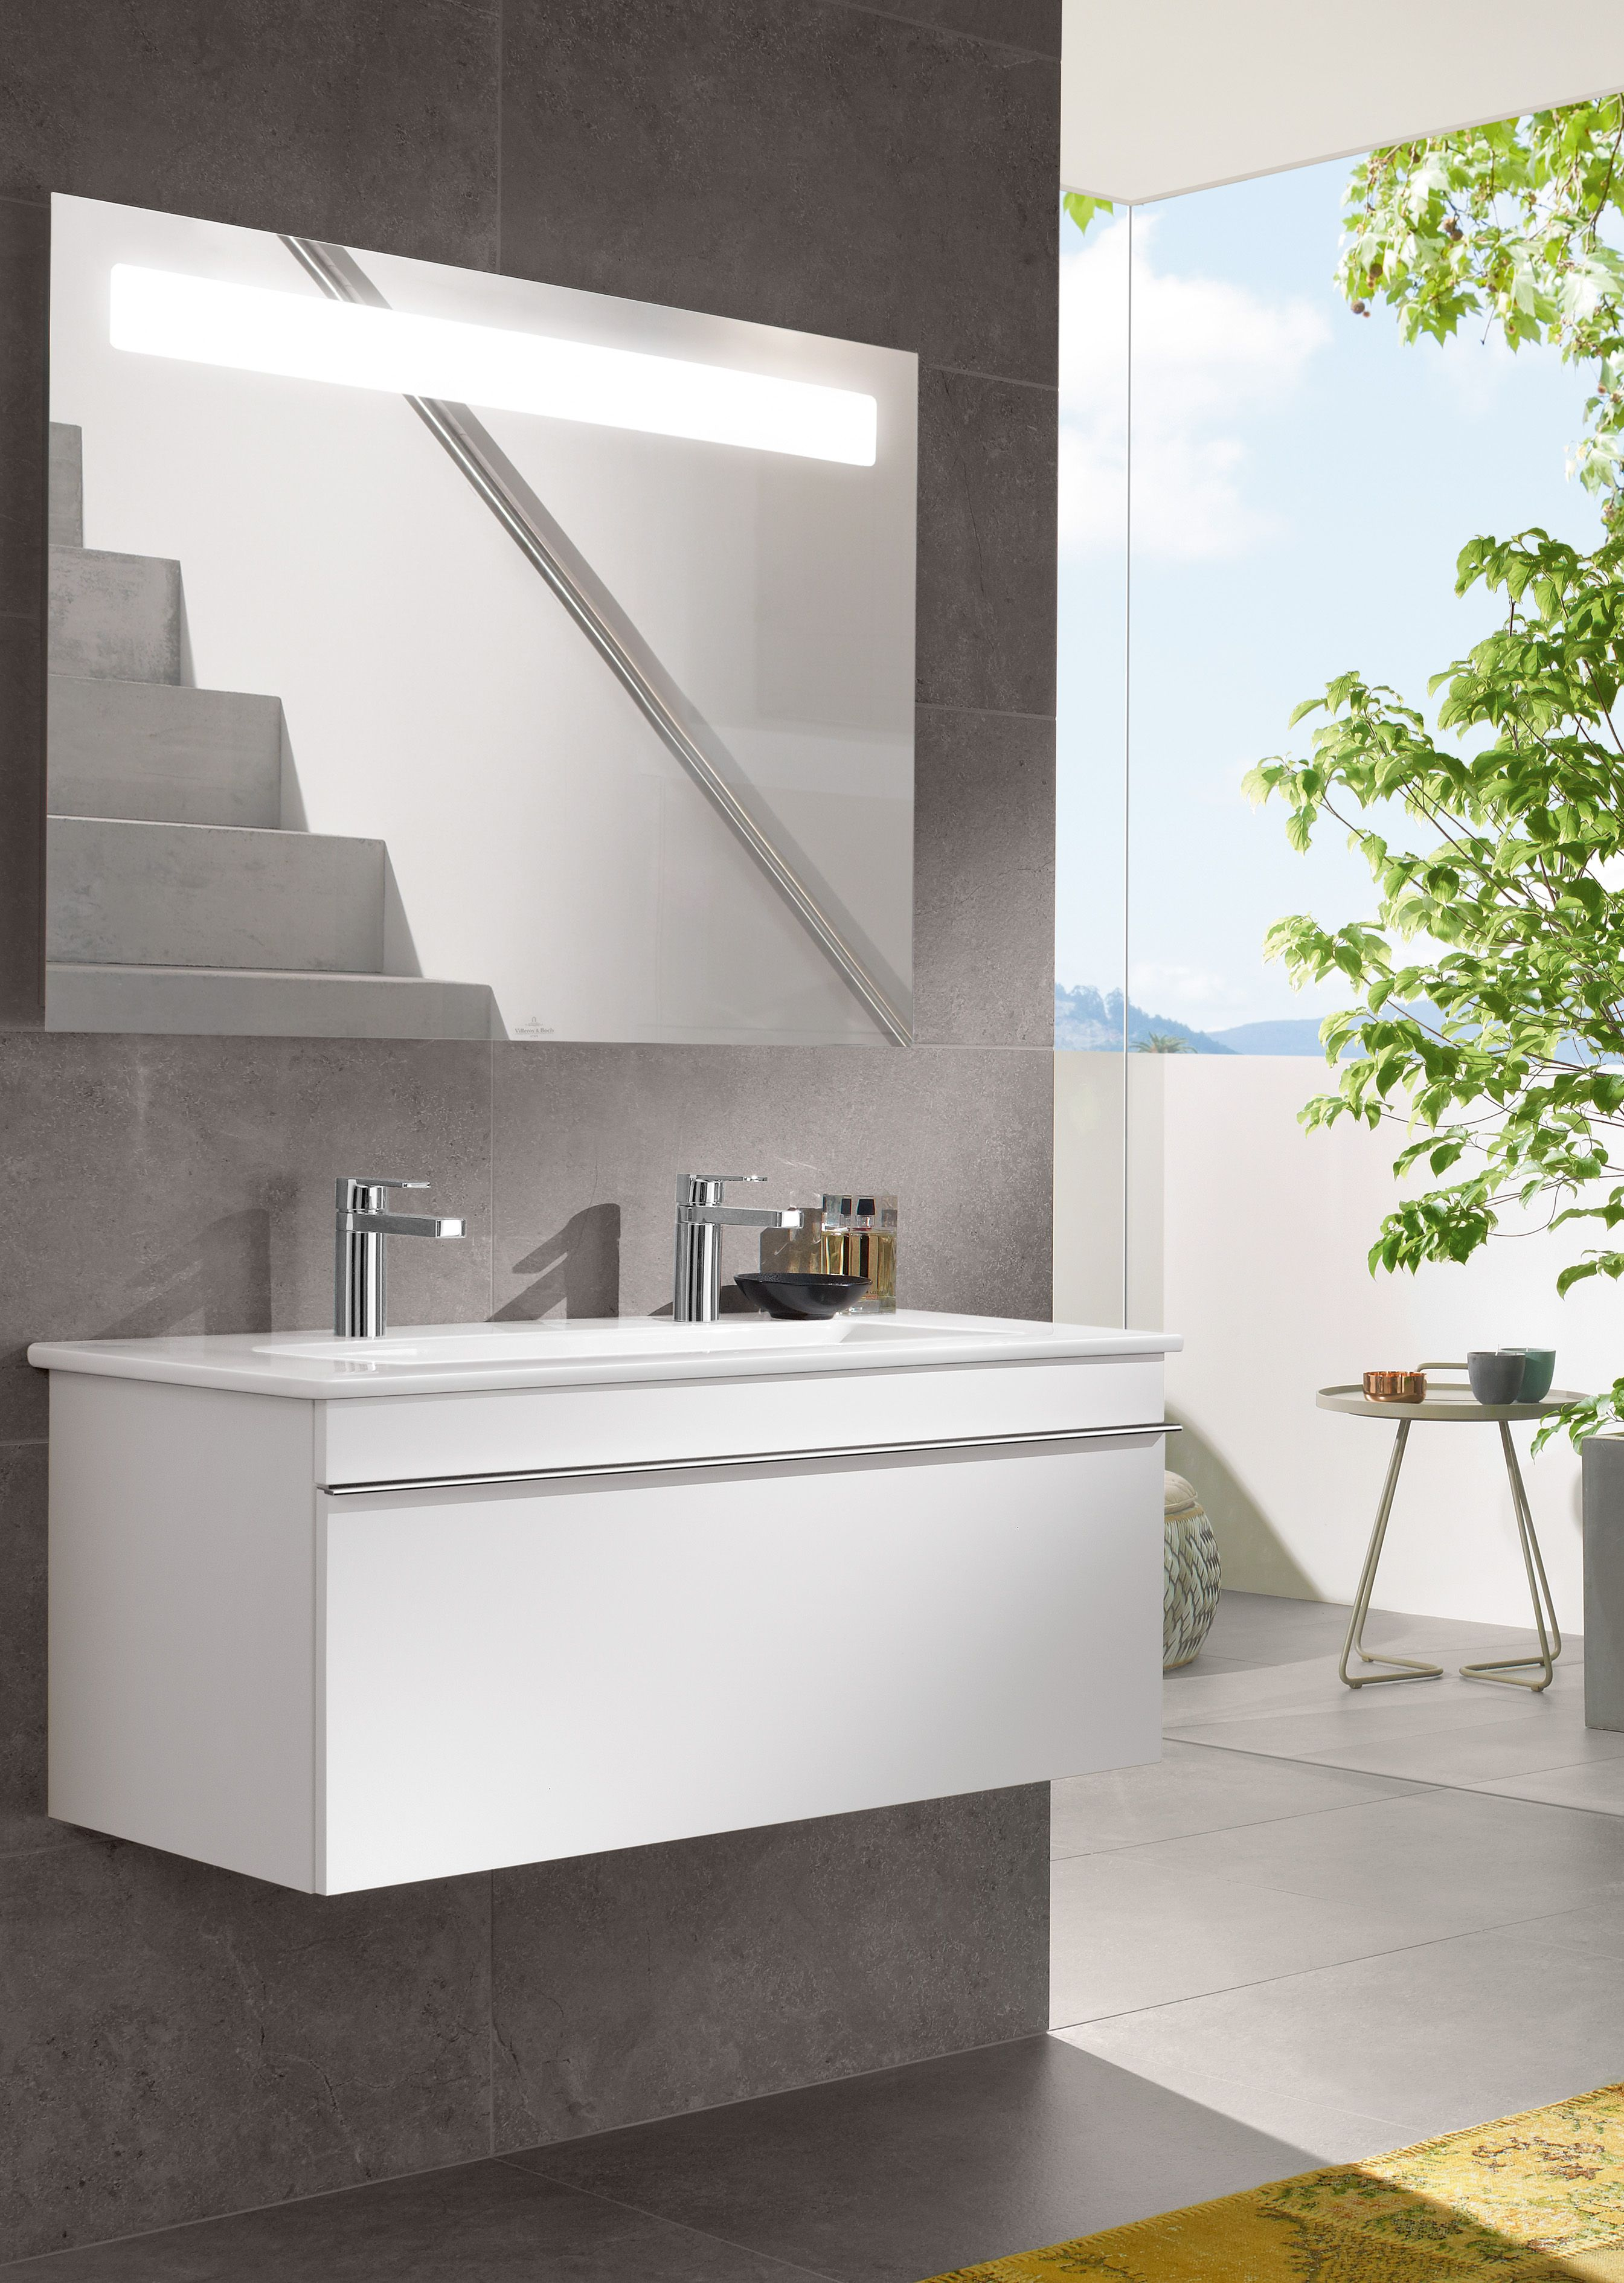 Venticello Learn More On Great Villeroy Boch Bathroom Furniture Here Www Vibo Info Venticello Badezimmer Modern Rund Ums Haus